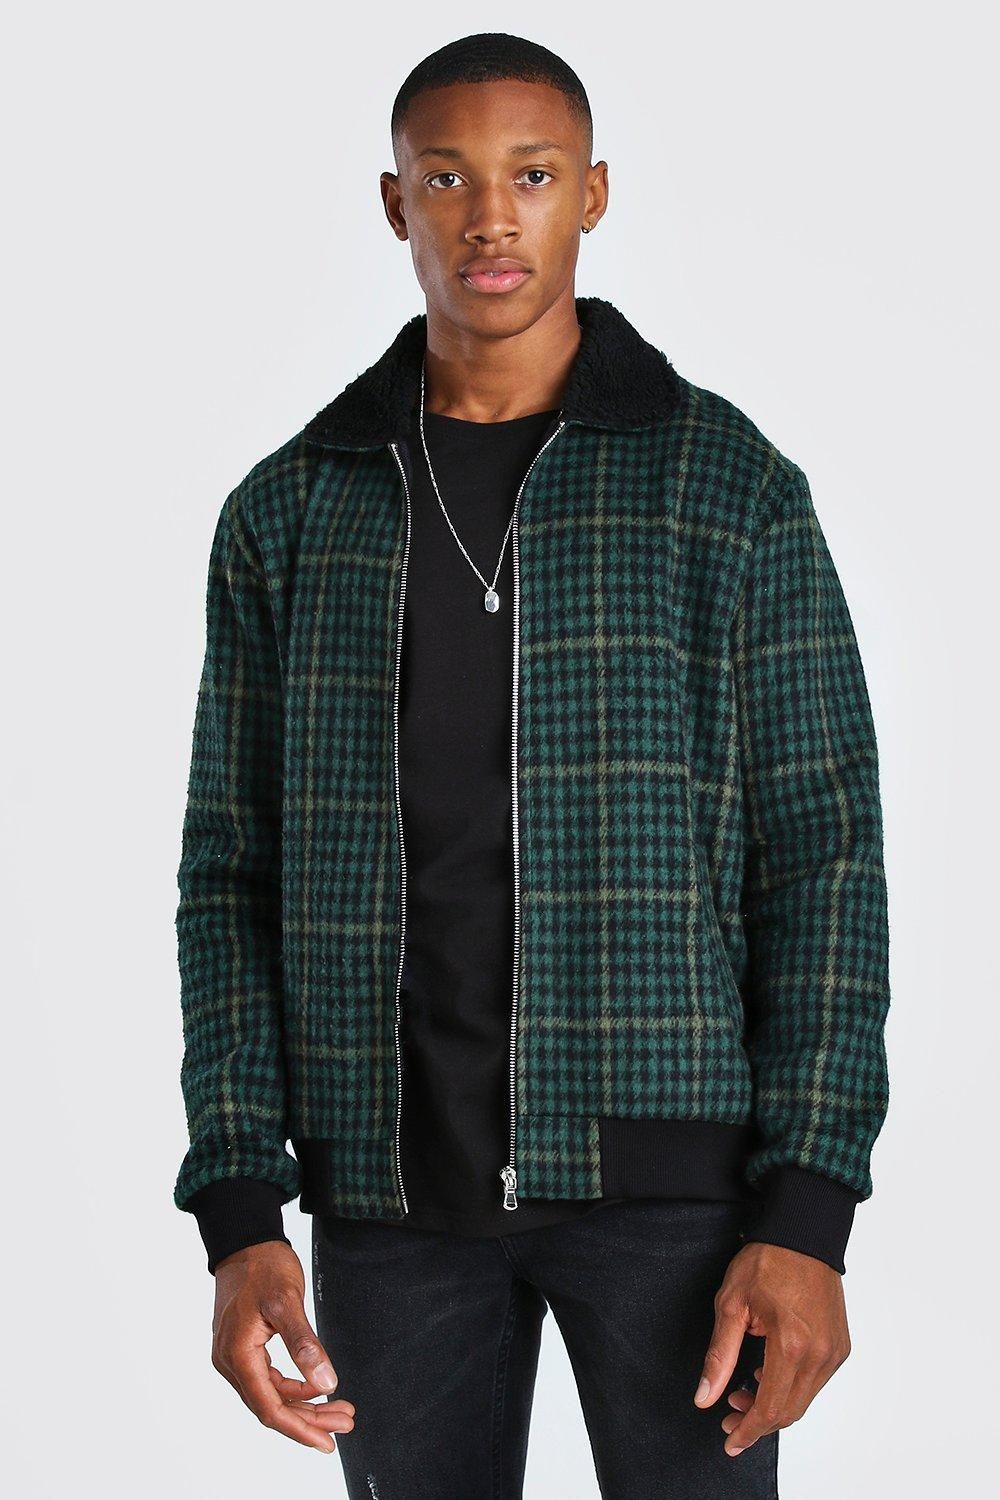 Men's Vintage Jackets & Coats Mens Flannel borg collar bomber jacket - Green $33.00 AT vintagedancer.com